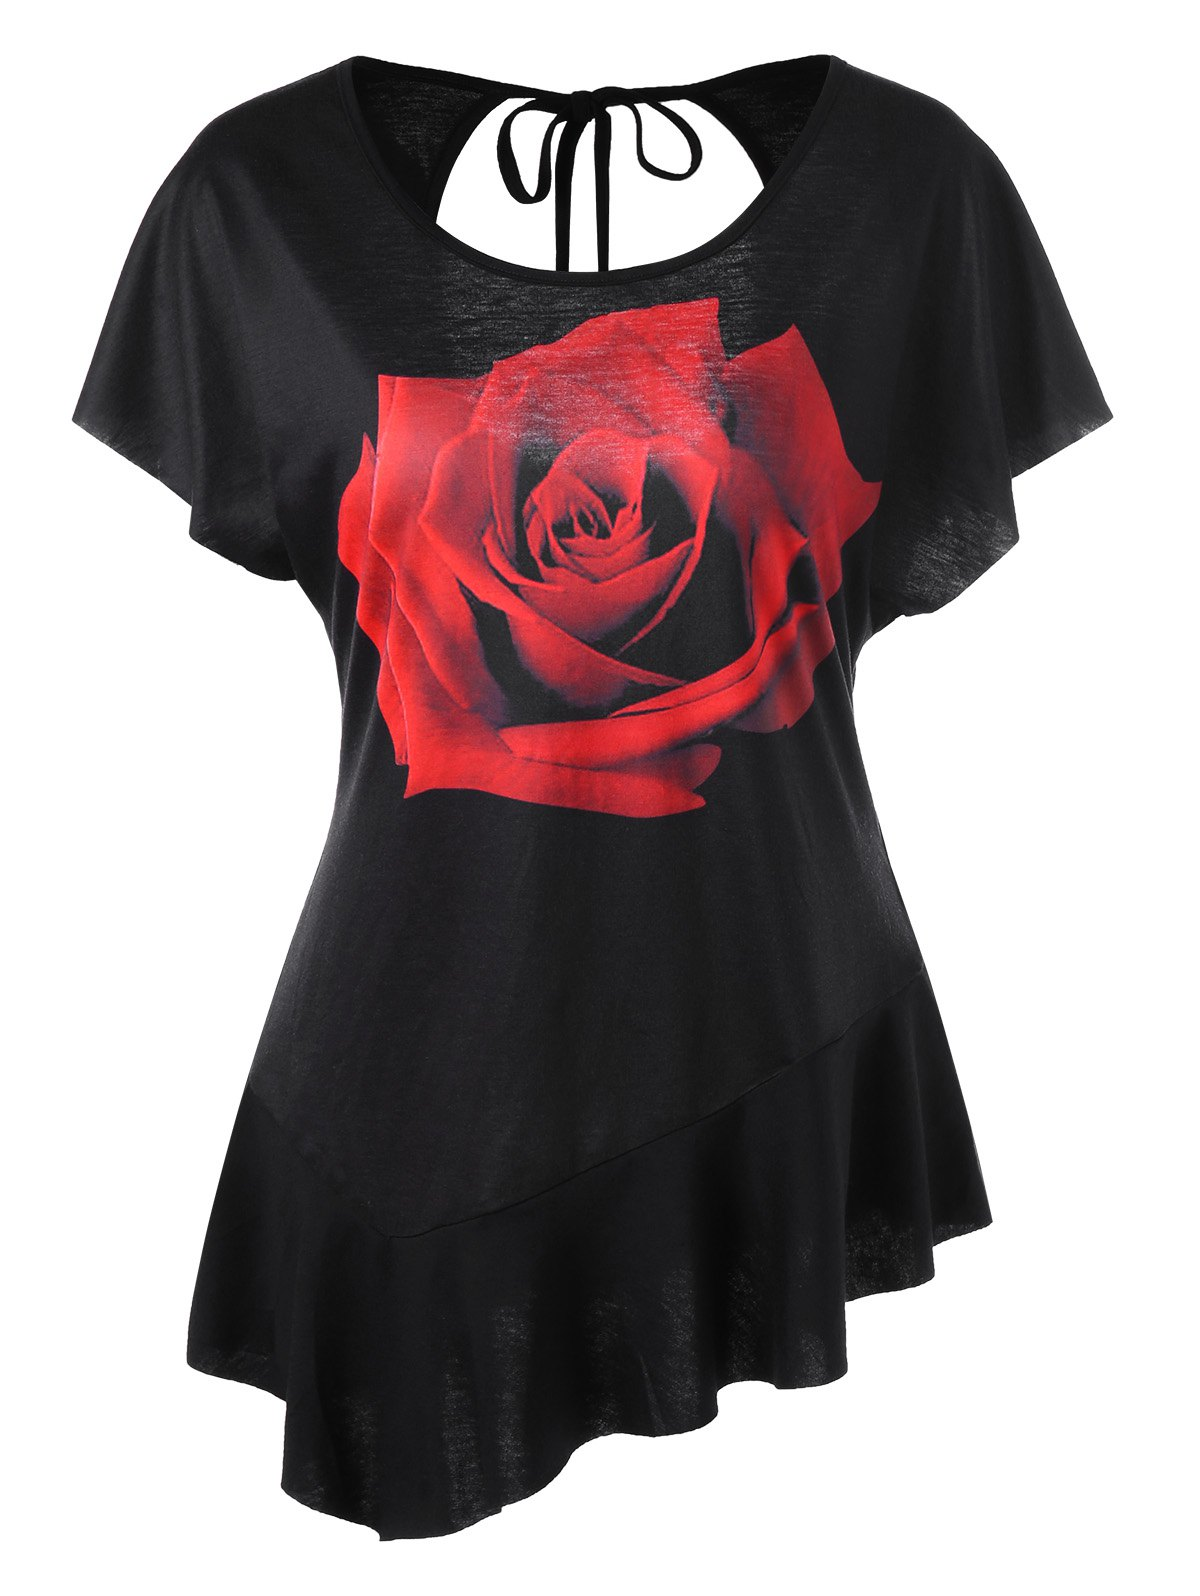 Rose Print Asymmetrical Cut Out T-shirt футболка breathe out rose t shirt черный l